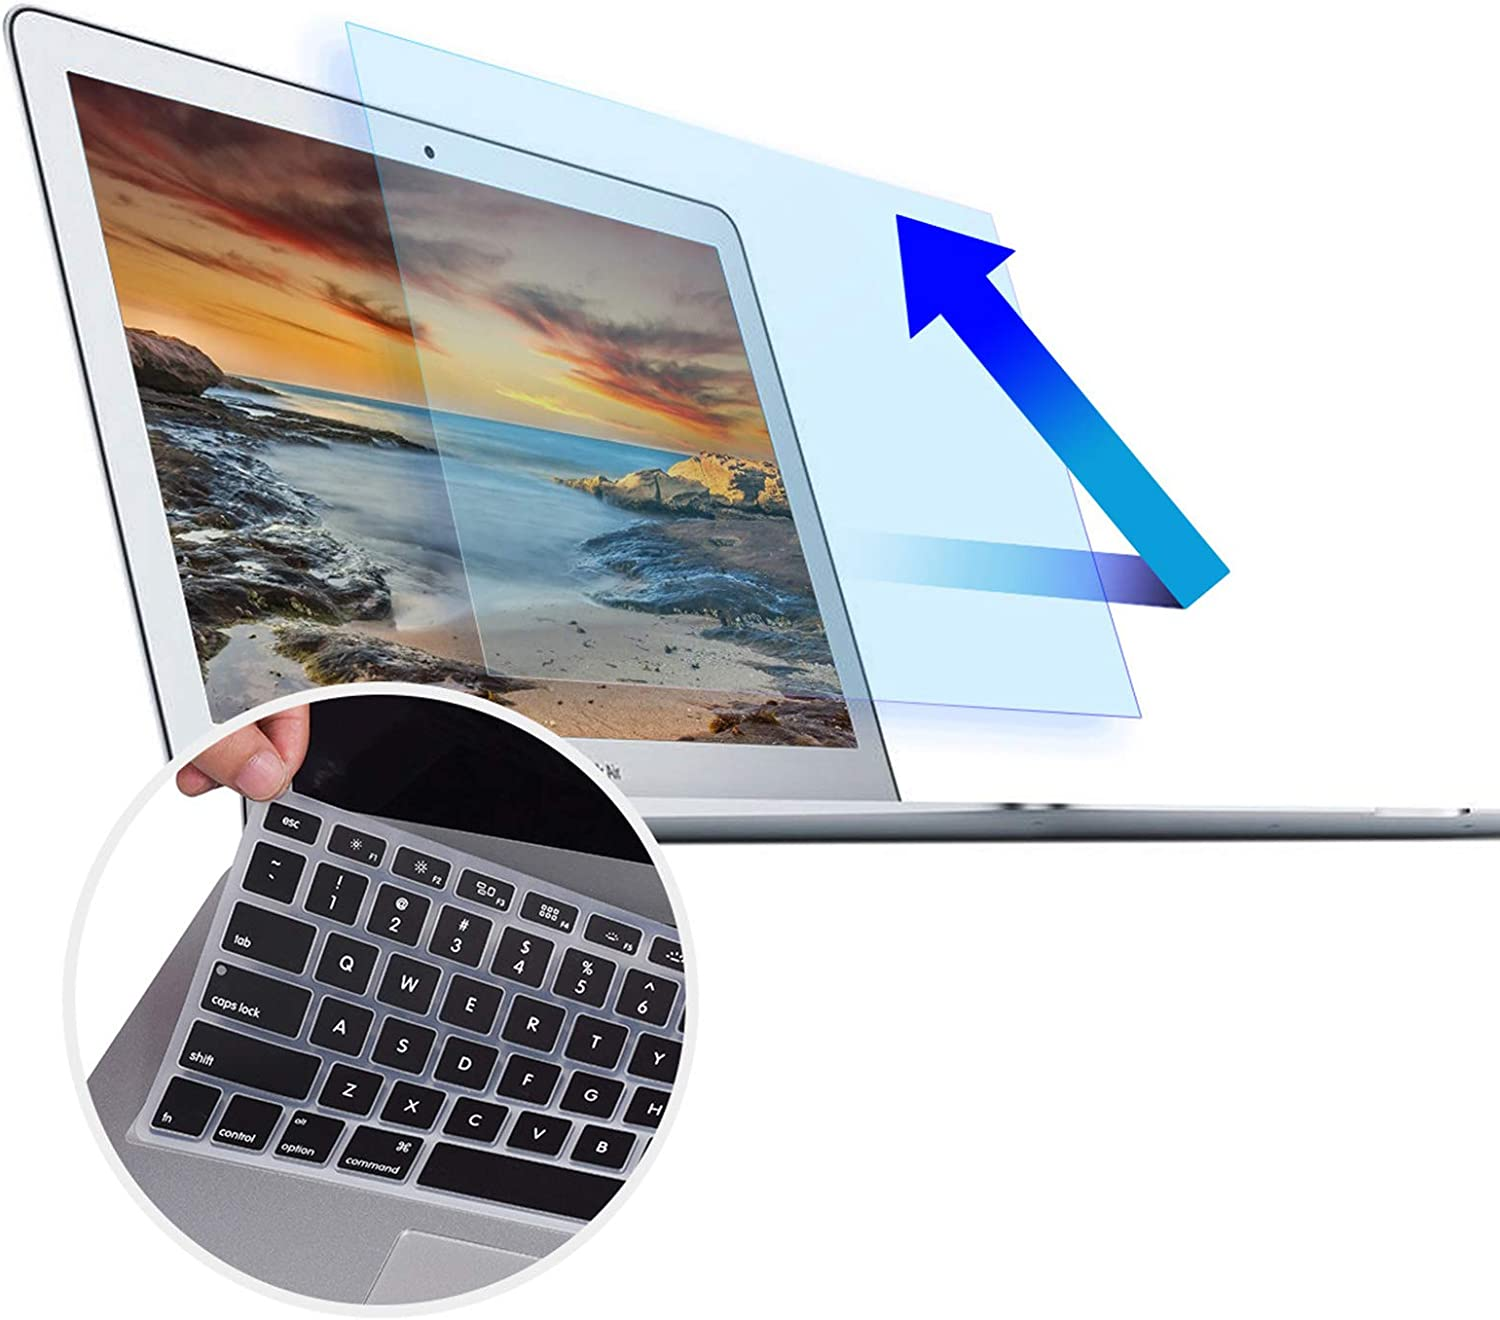 Anti Blue Light Screen Protector for MacBook Air 13 Model A1466 A1369 2010-2017 13.3 Inch, Anti Glare Blue Light Screen Filter With Silicone Keyboard Cover Protector